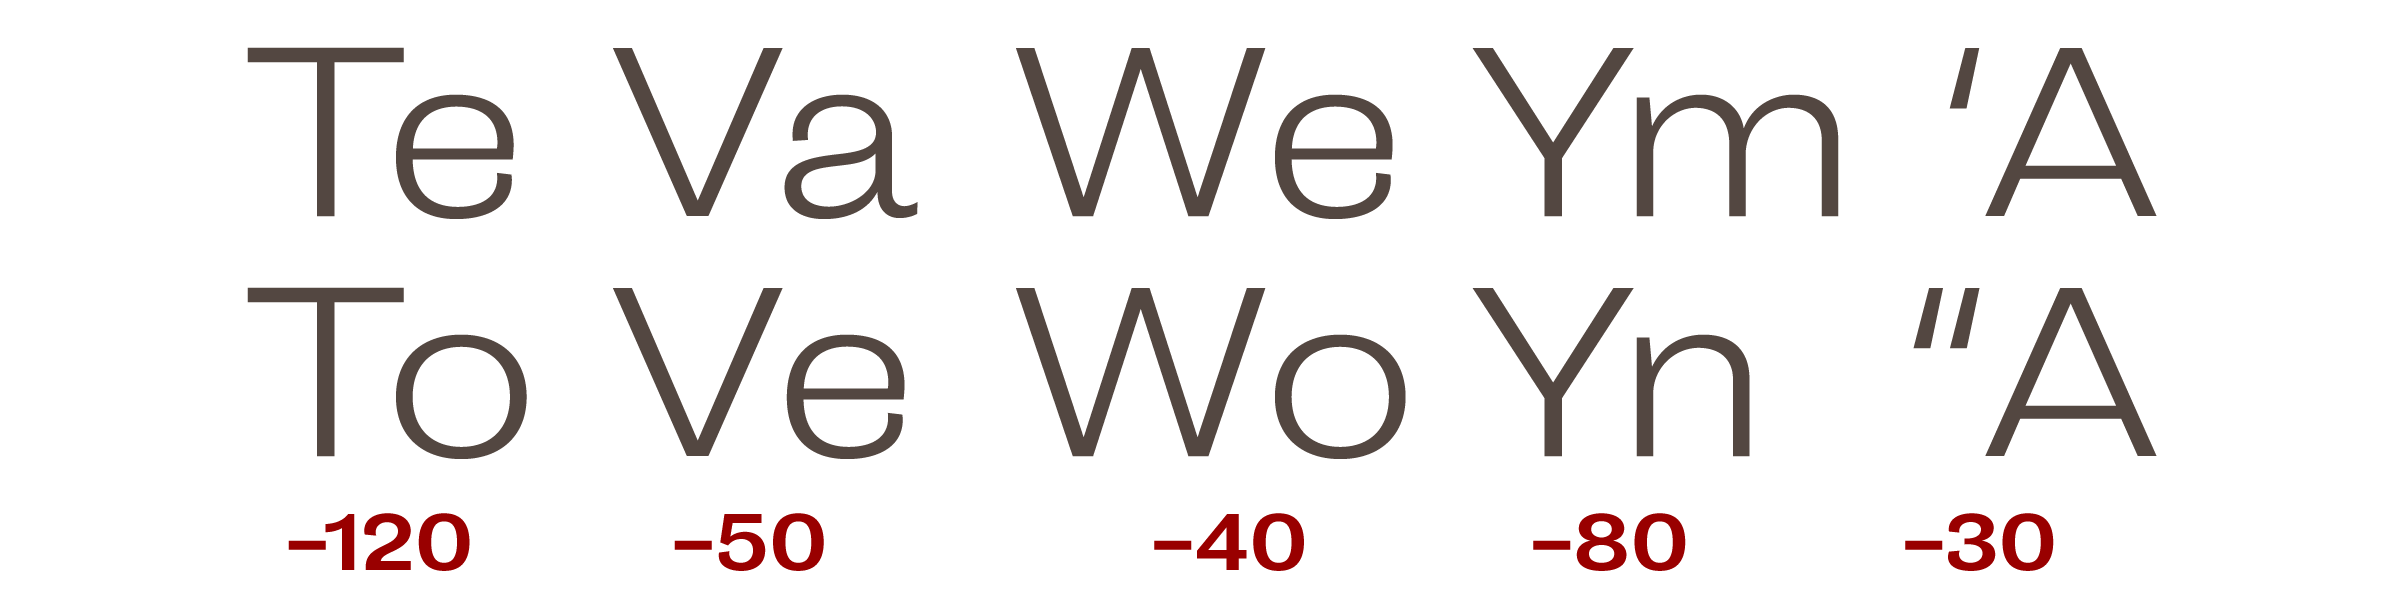 Similar to what happens when spacing, identical kerning values can be applied when pairing letters to different letters that however have similar shapes. Notice the kerning values are different in the 'V' and 'W' pairs. Although they may look the same, the subtle difference in angle of the right stroke means the kerning has to be adapted for what appears to be identical pairs.